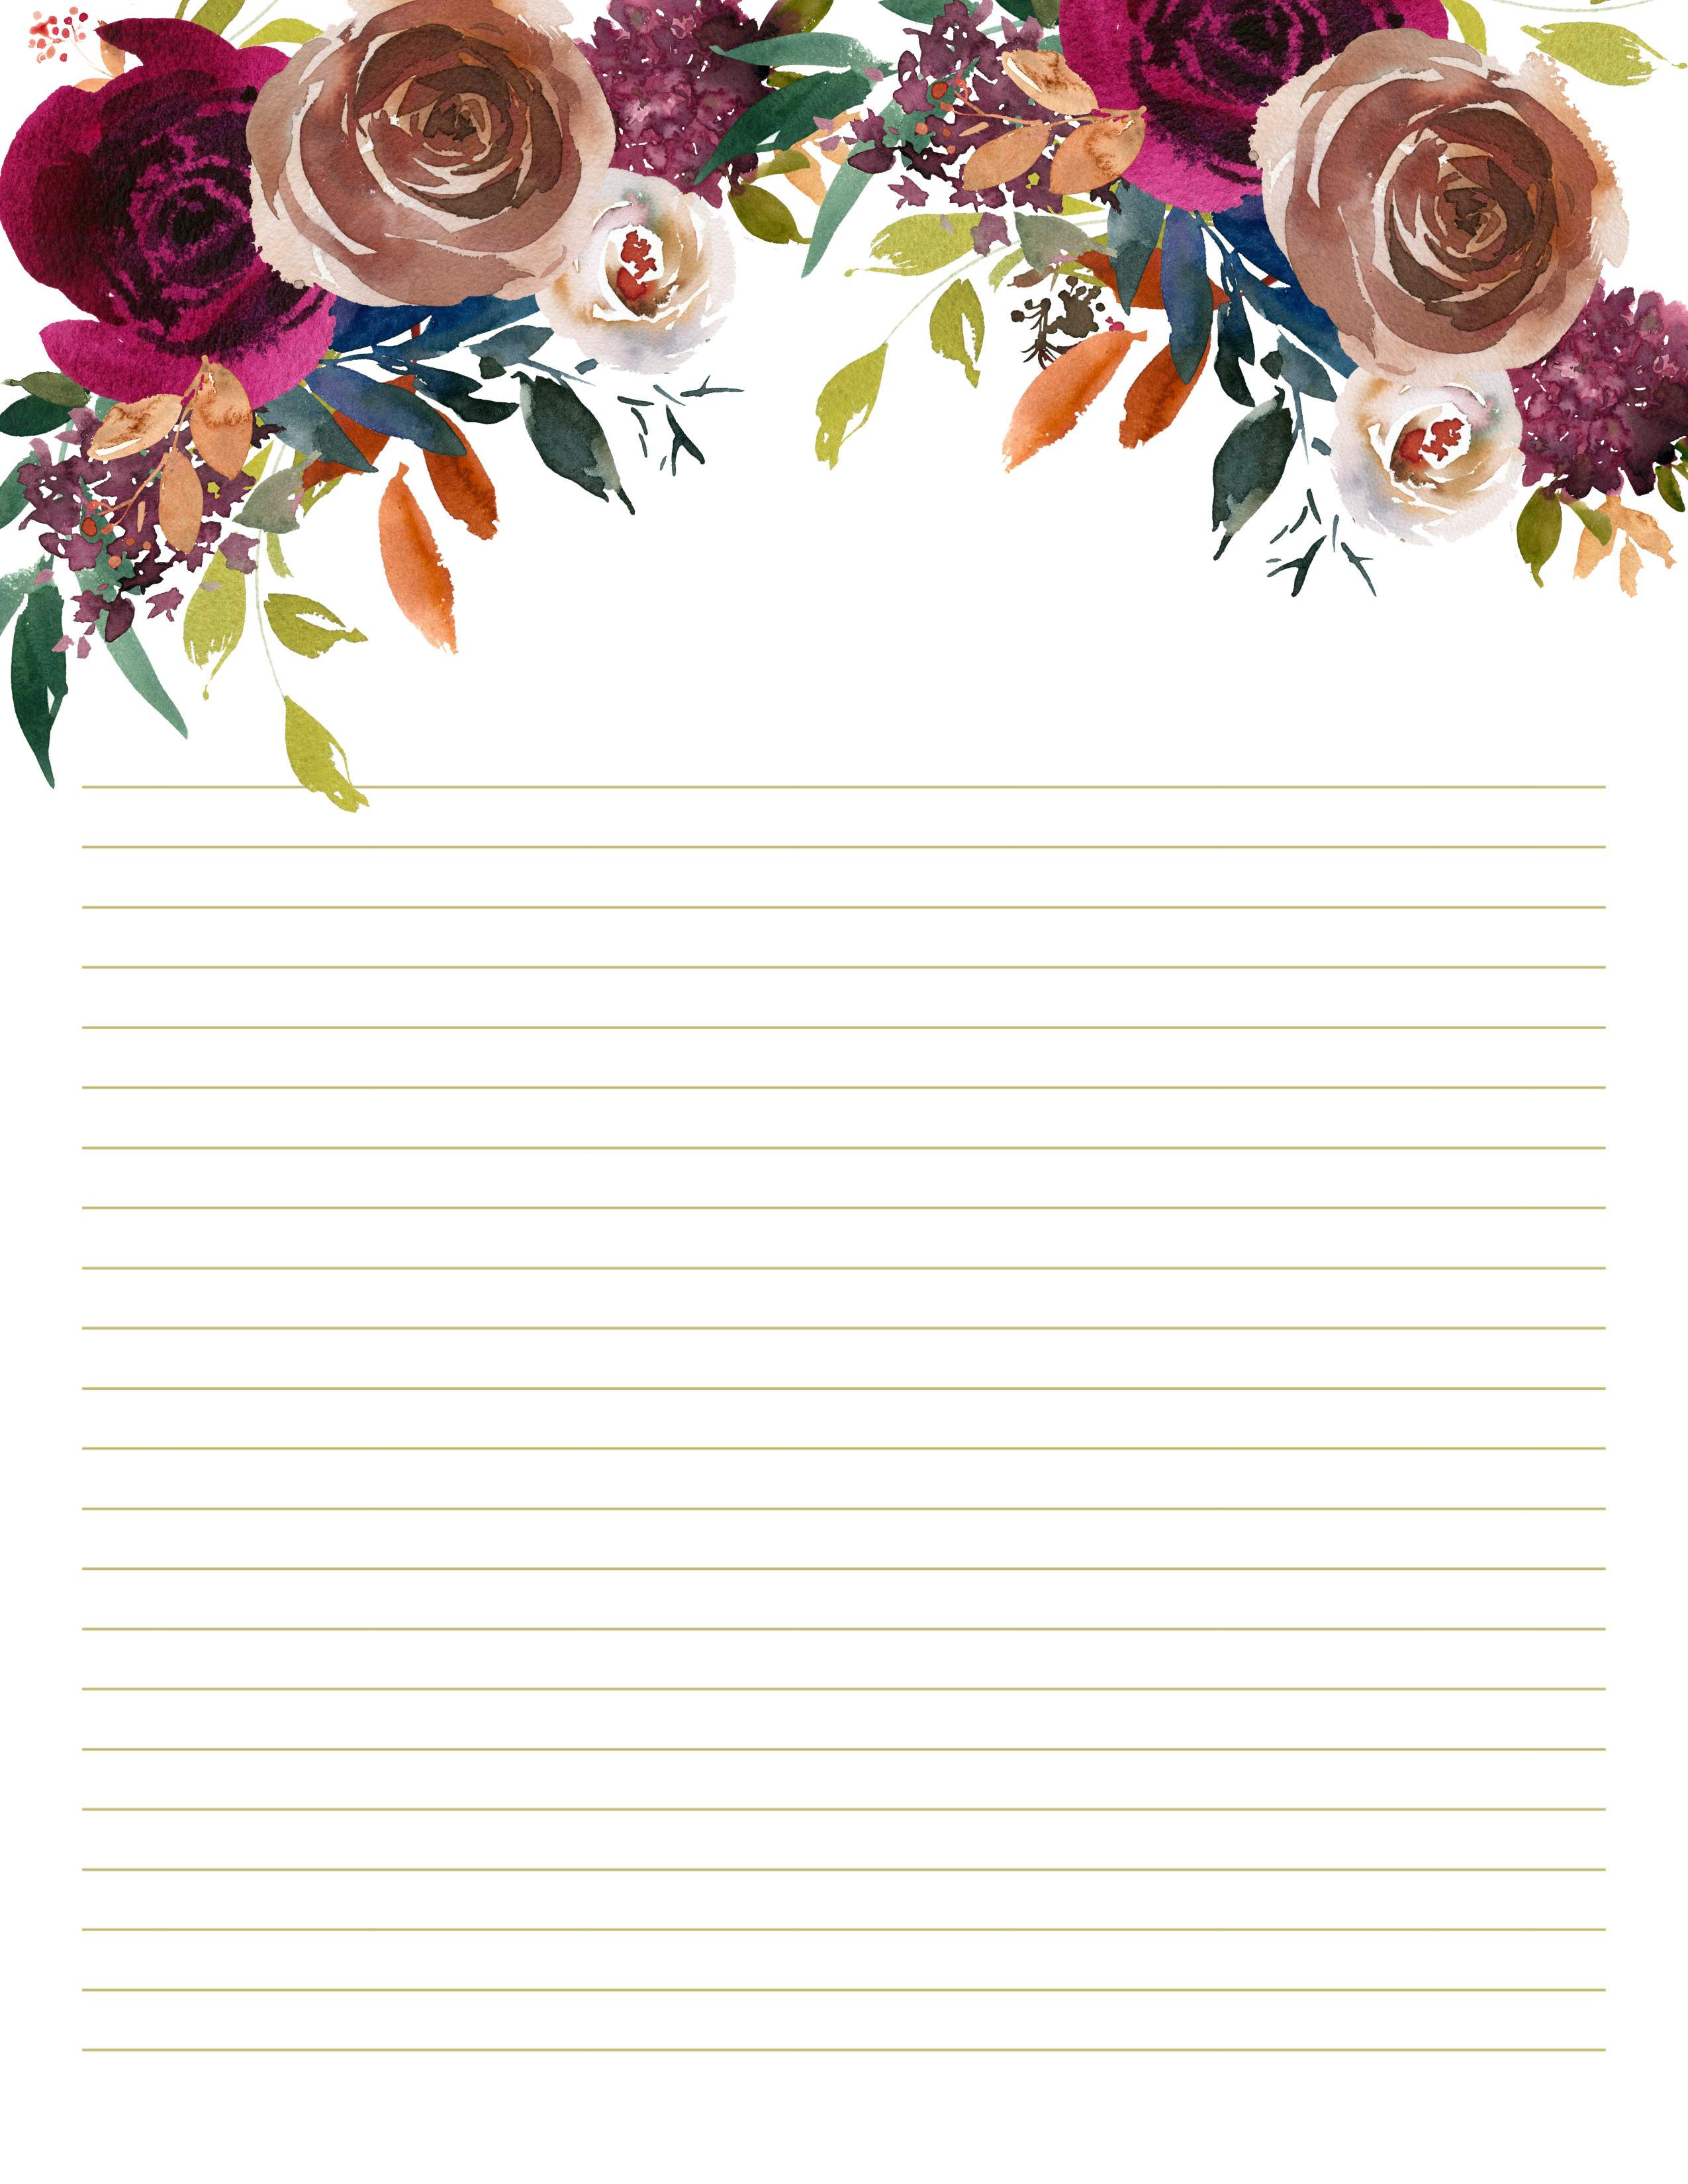 Rustic Floral Stationery Brown And Maroon Printable Us Etsy In 2020 Floral Stationery Writing Paper Printable Stationery Free Printable Stationery